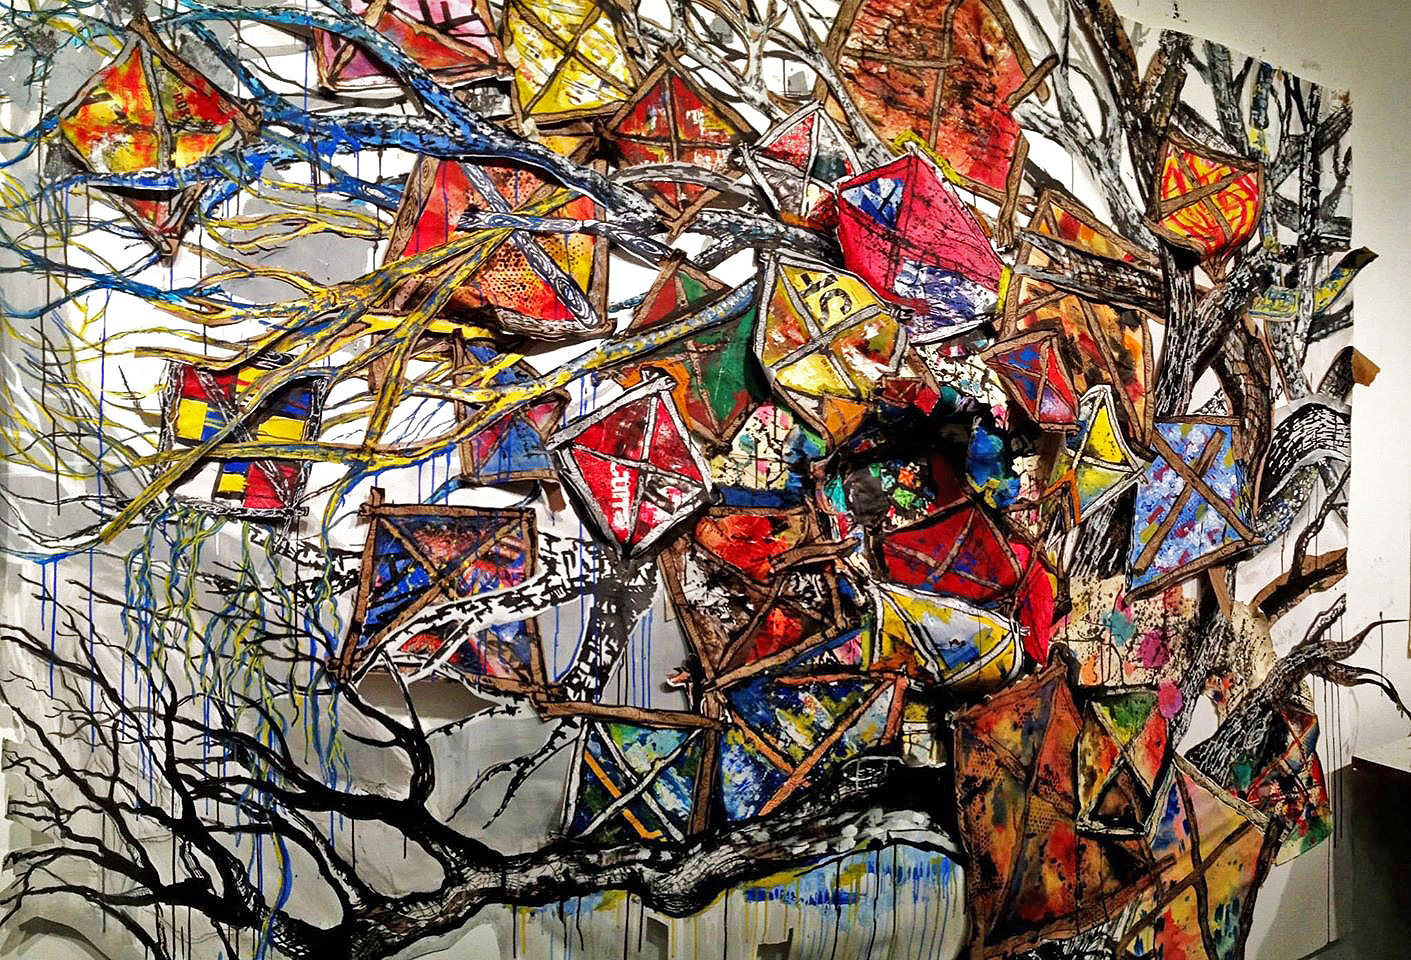 The Lost and Stranded - 6' X 8' - Acrylic and Collage on Paper